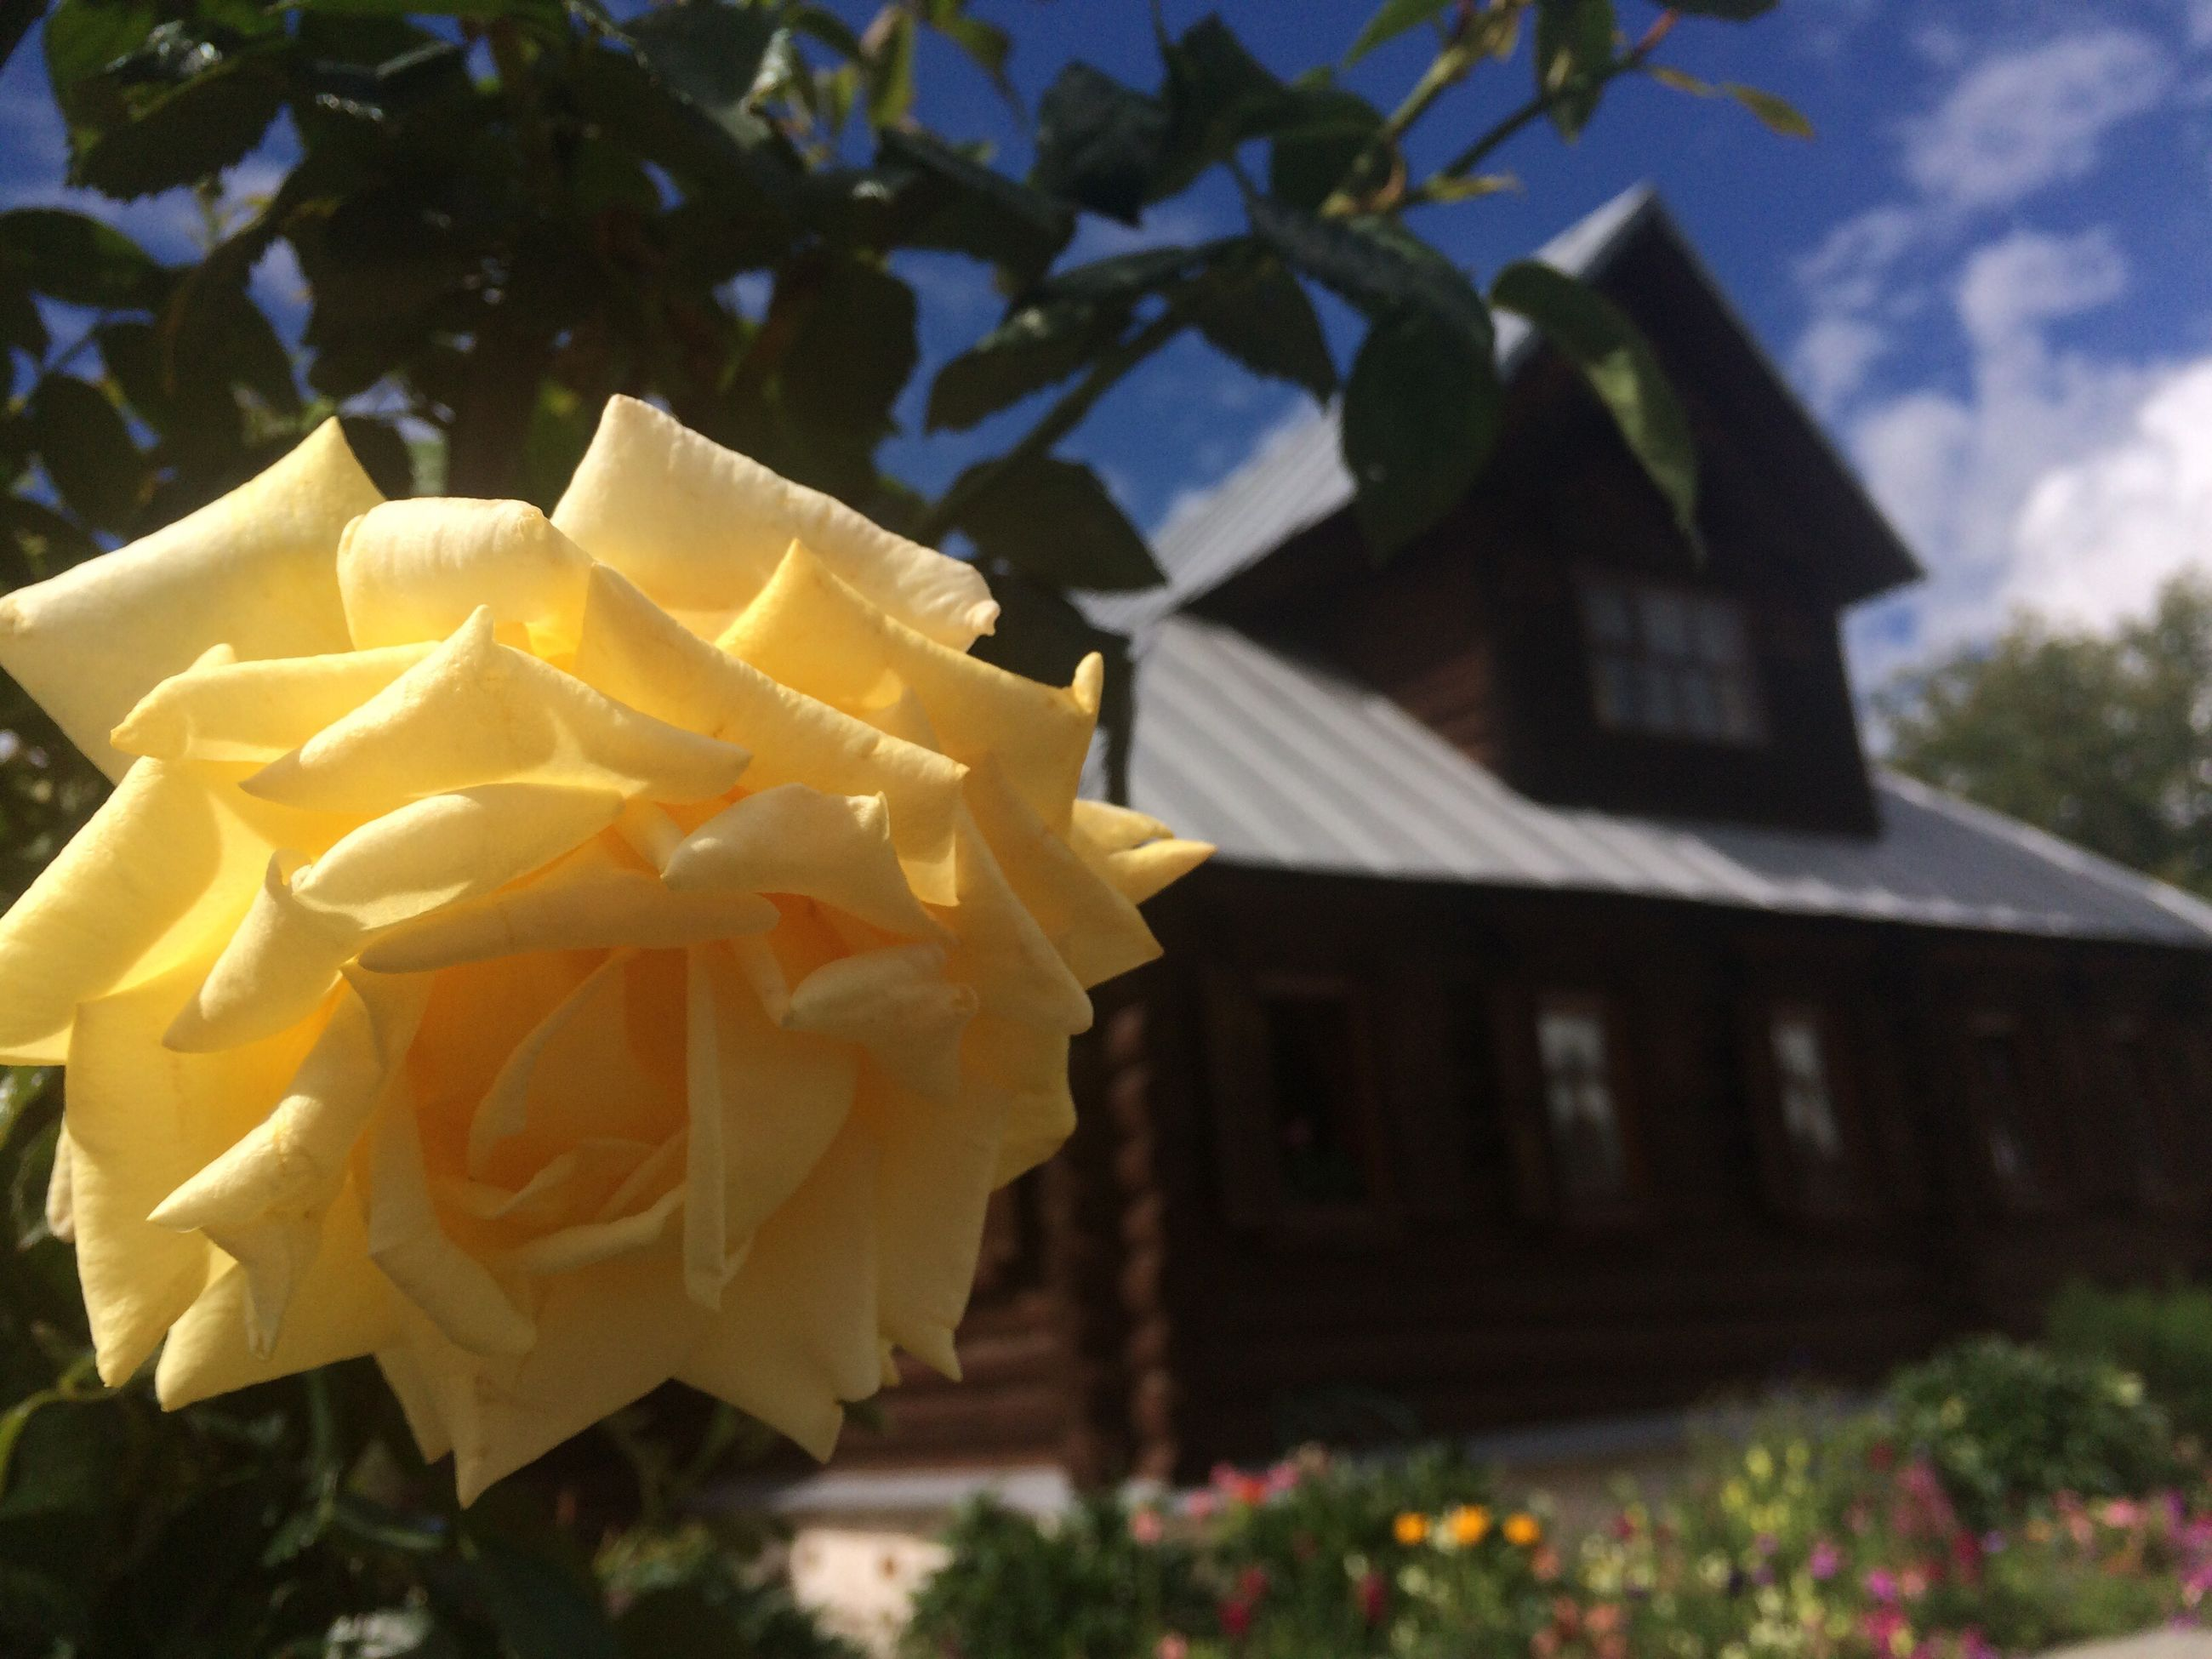 flower, freshness, petal, architecture, building exterior, built structure, yellow, close-up, fragility, flower head, rose - flower, springtime, beauty in nature, day, nature, growth, outdoors, vibrant color, blossom, focus on foreground, single flower, no people, in bloom, focus, soft focus, botany, flowering plant